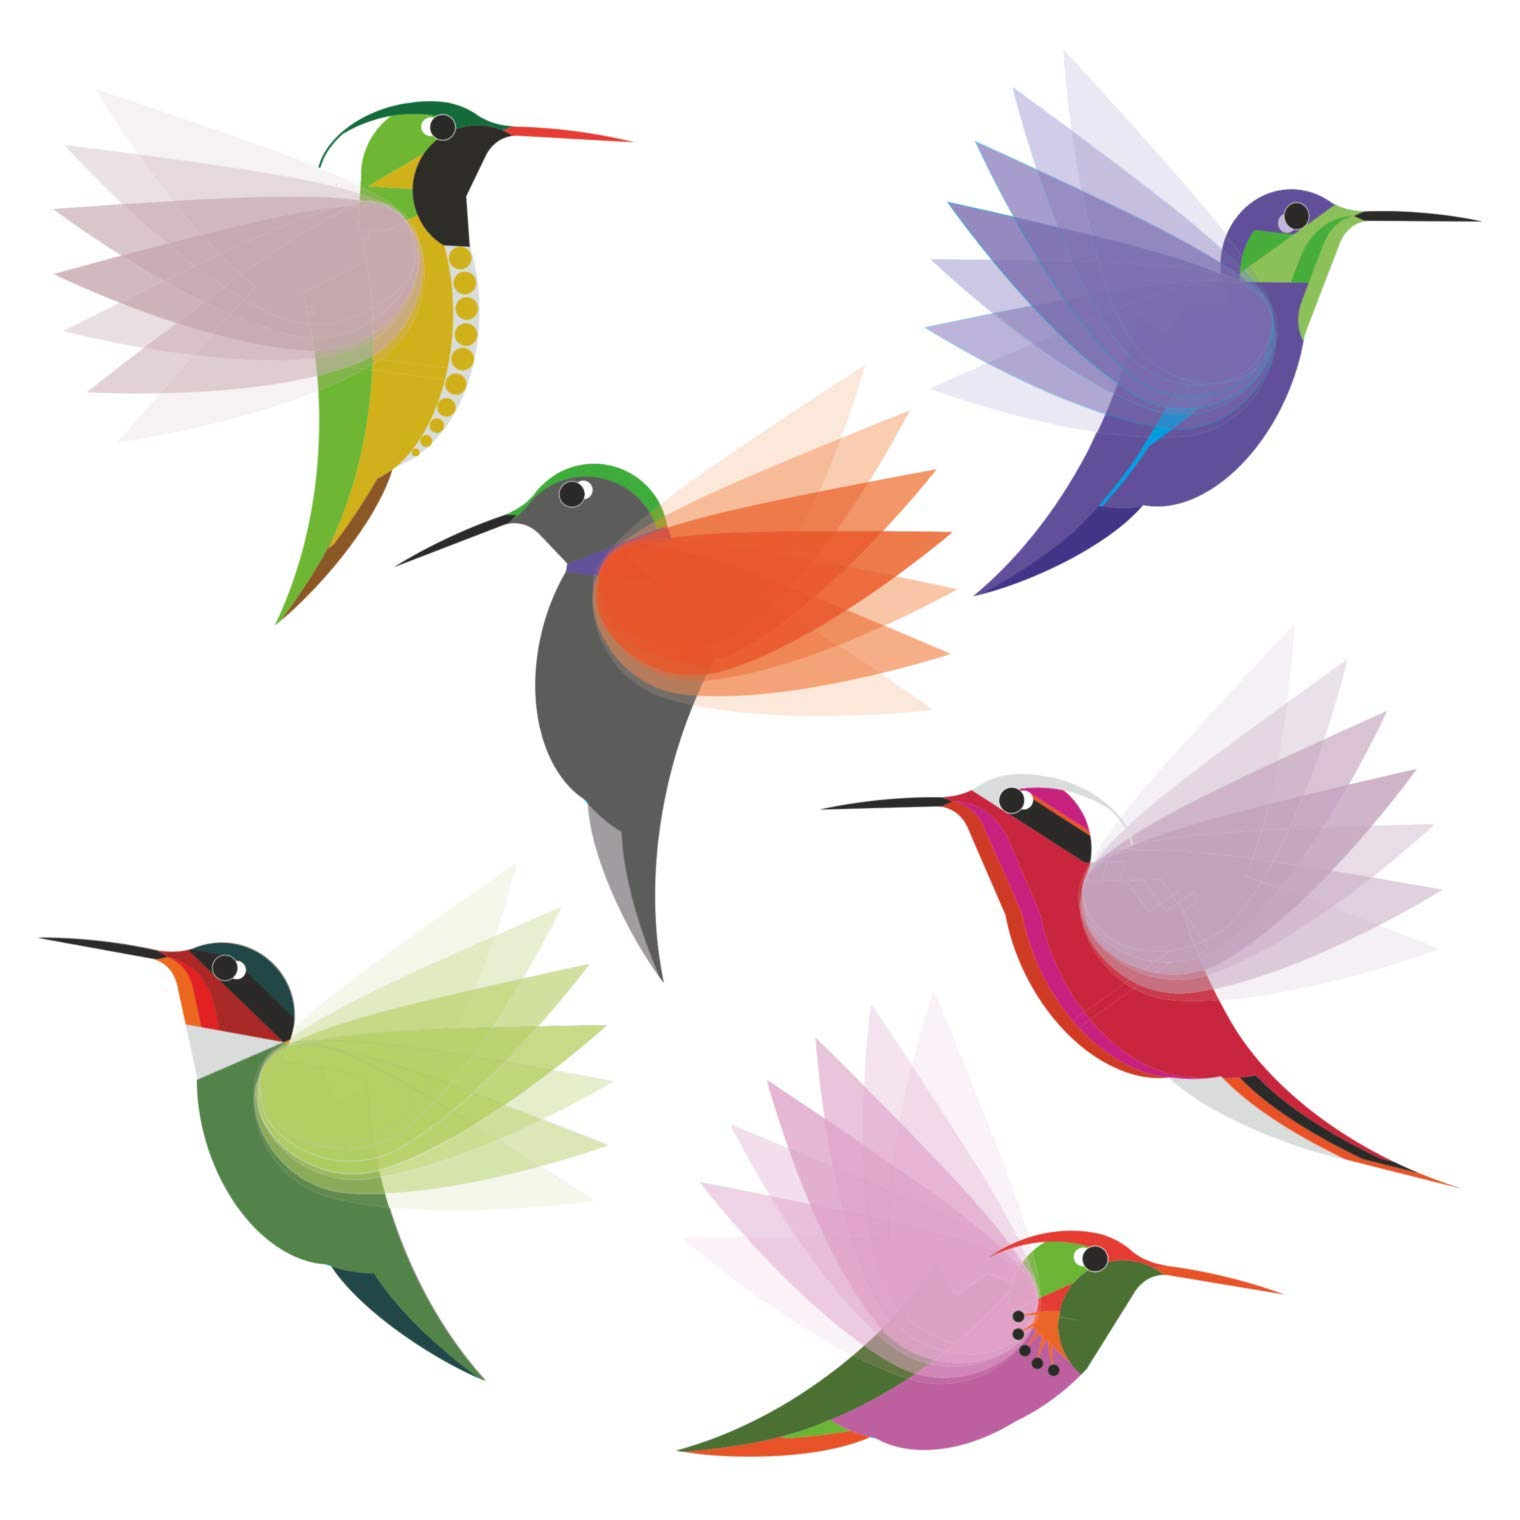 Hummingbirds Window Clings/Decals - Set of 6 Small Illustrated Decorative Glass Static Clings - Helping Prevent Bird Strikes on Windows by Window Flakes